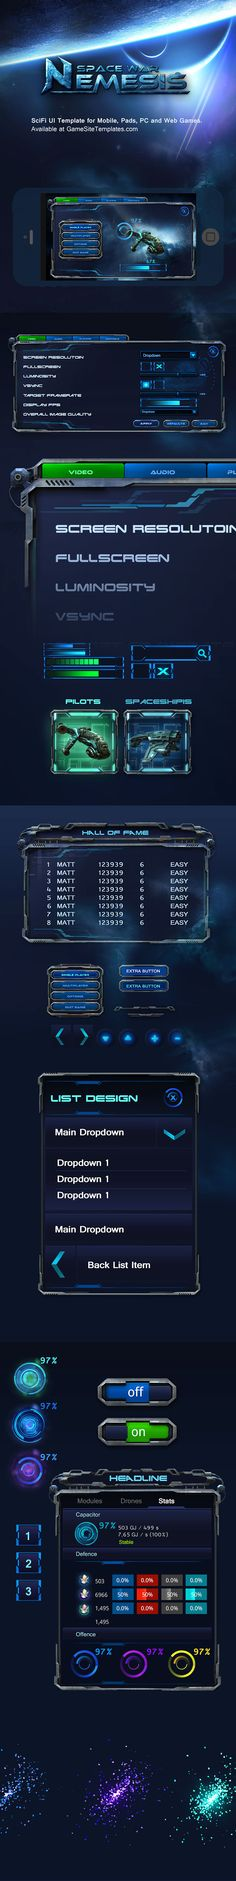 Space War Mobile Game UI Template on Behance